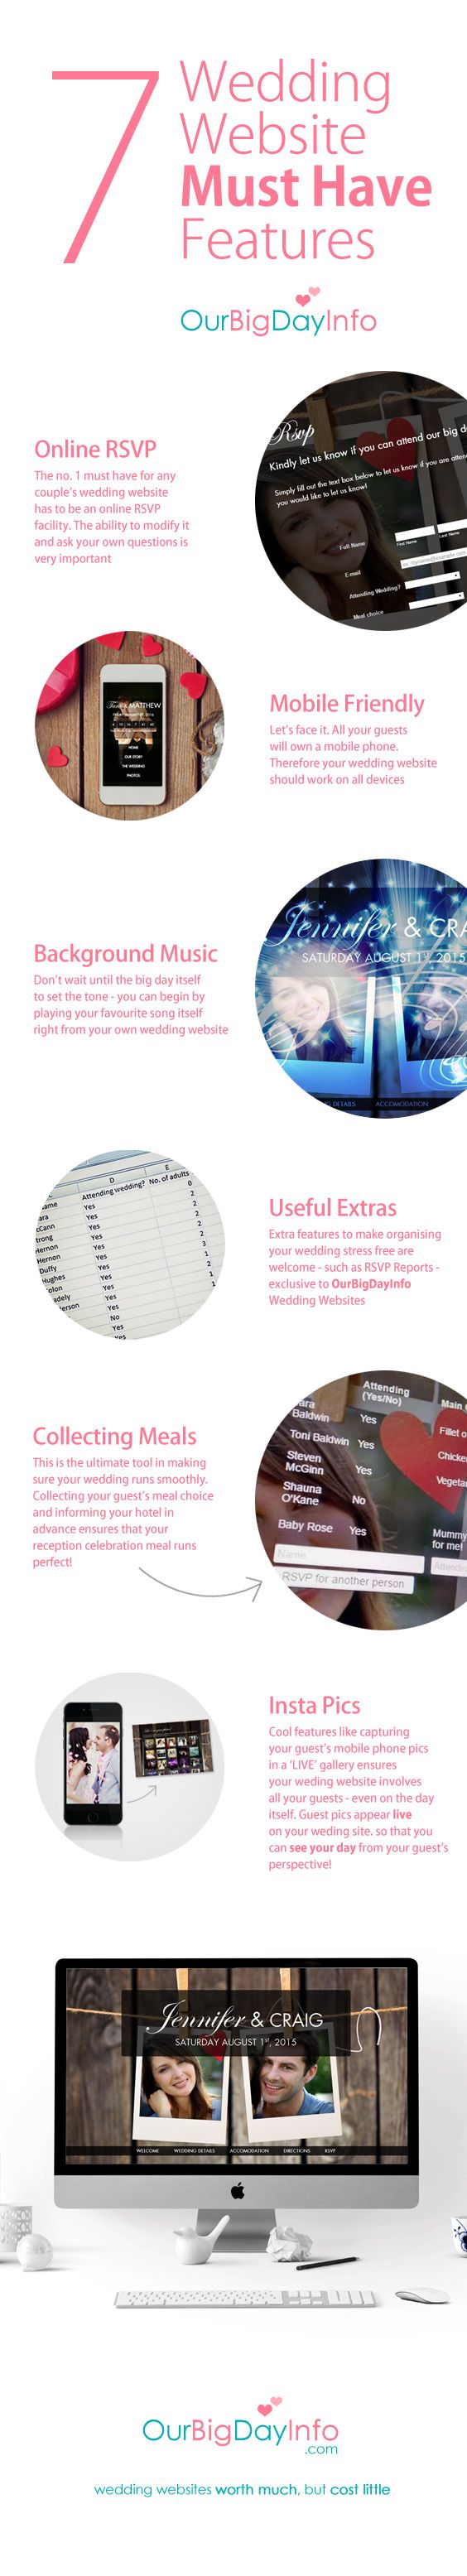 7 must haves features for every wedding website. OurBigDayInfo has these wonderful features and lots more!